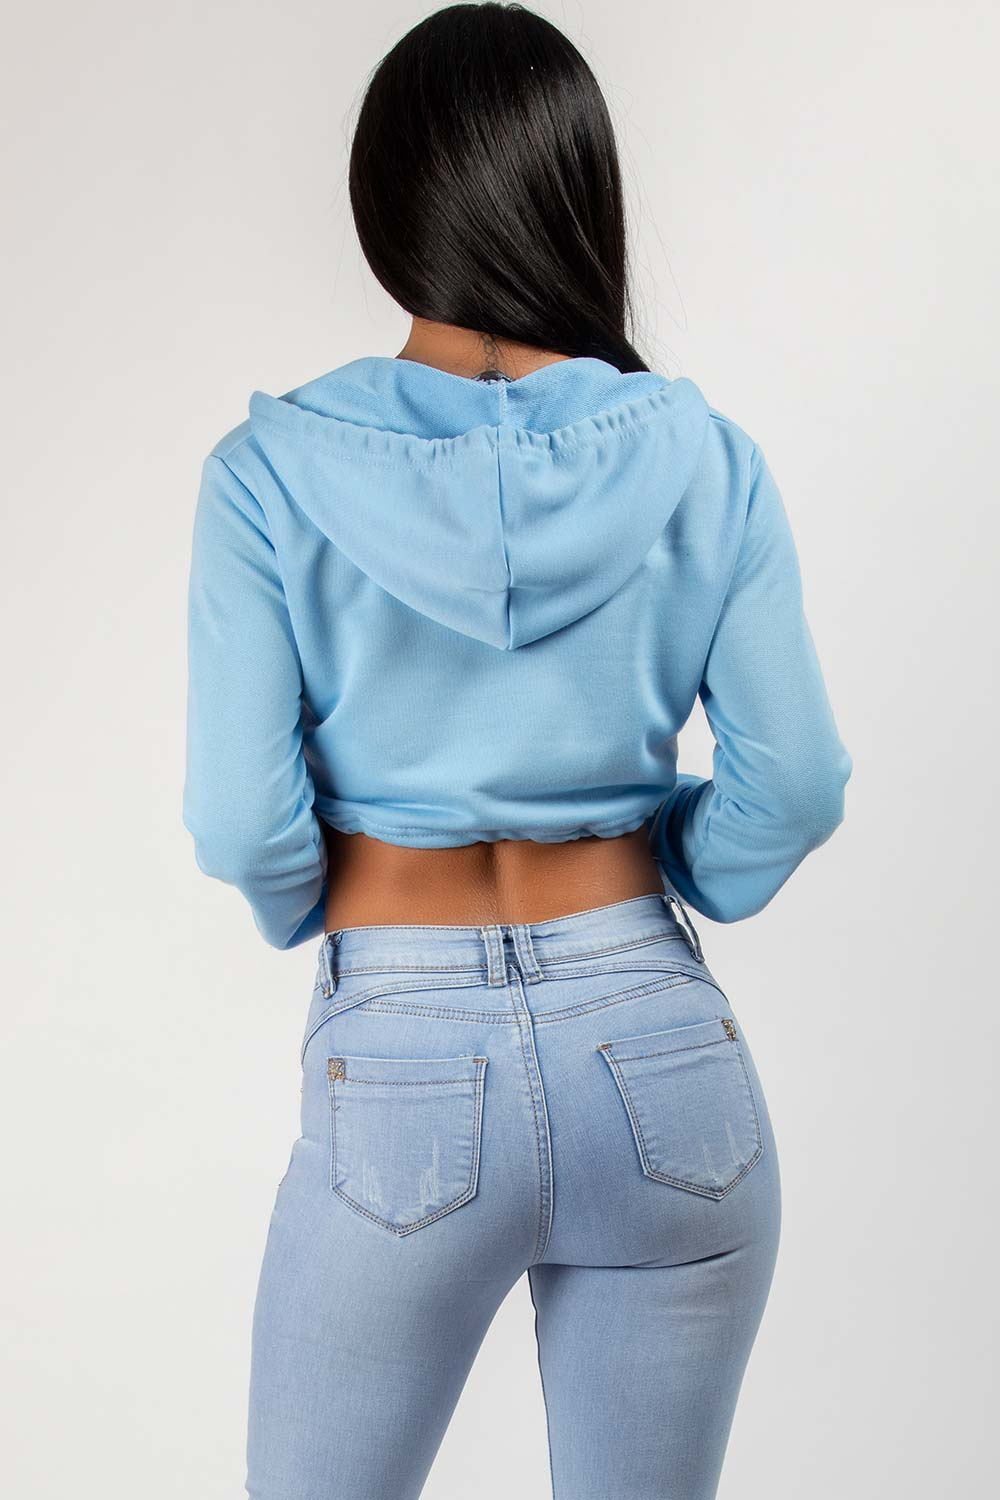 Sky Blue Crop Hoodie With Draw String Waist